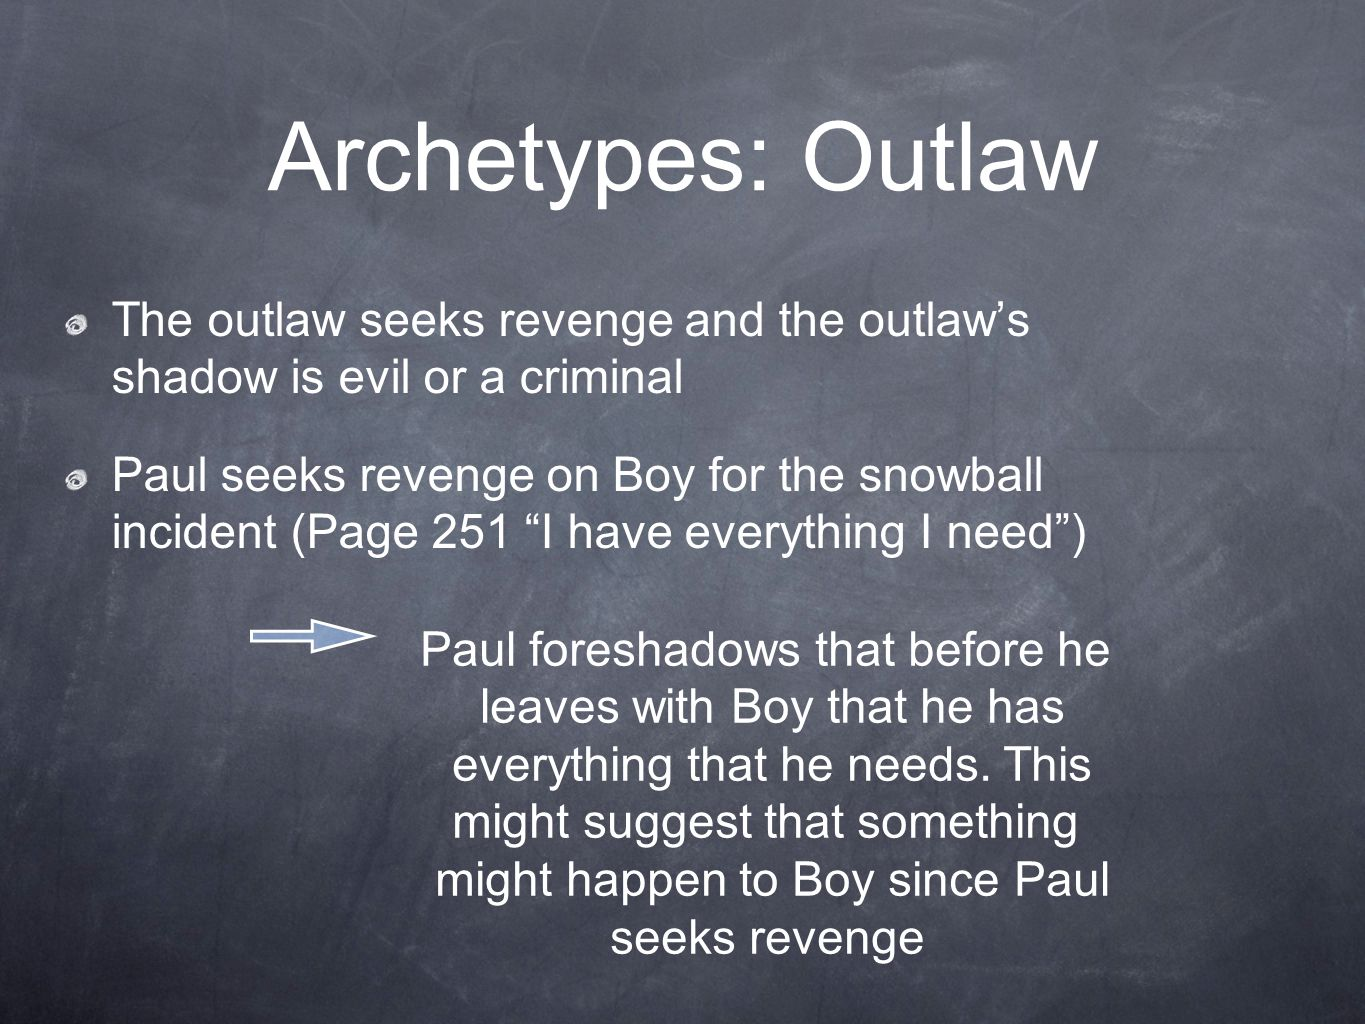 Archetypes: Outlaw The outlaw seeks revenge and the outlaw's shadow is evil or a criminal.